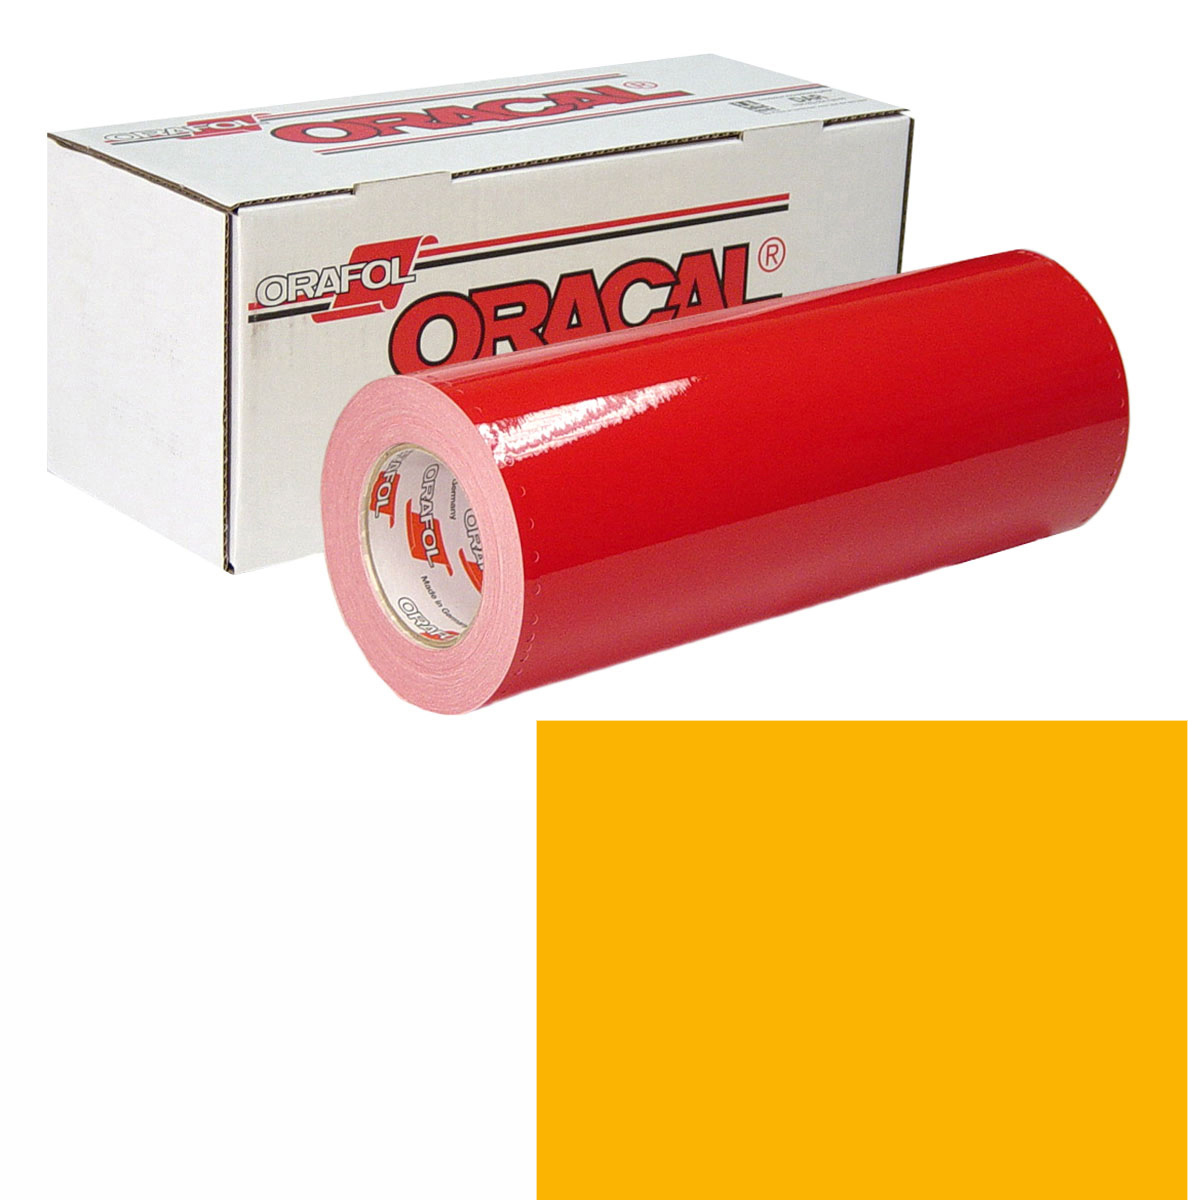 ORACAL 951 30In X 10Yd 219 Yolk Yellow